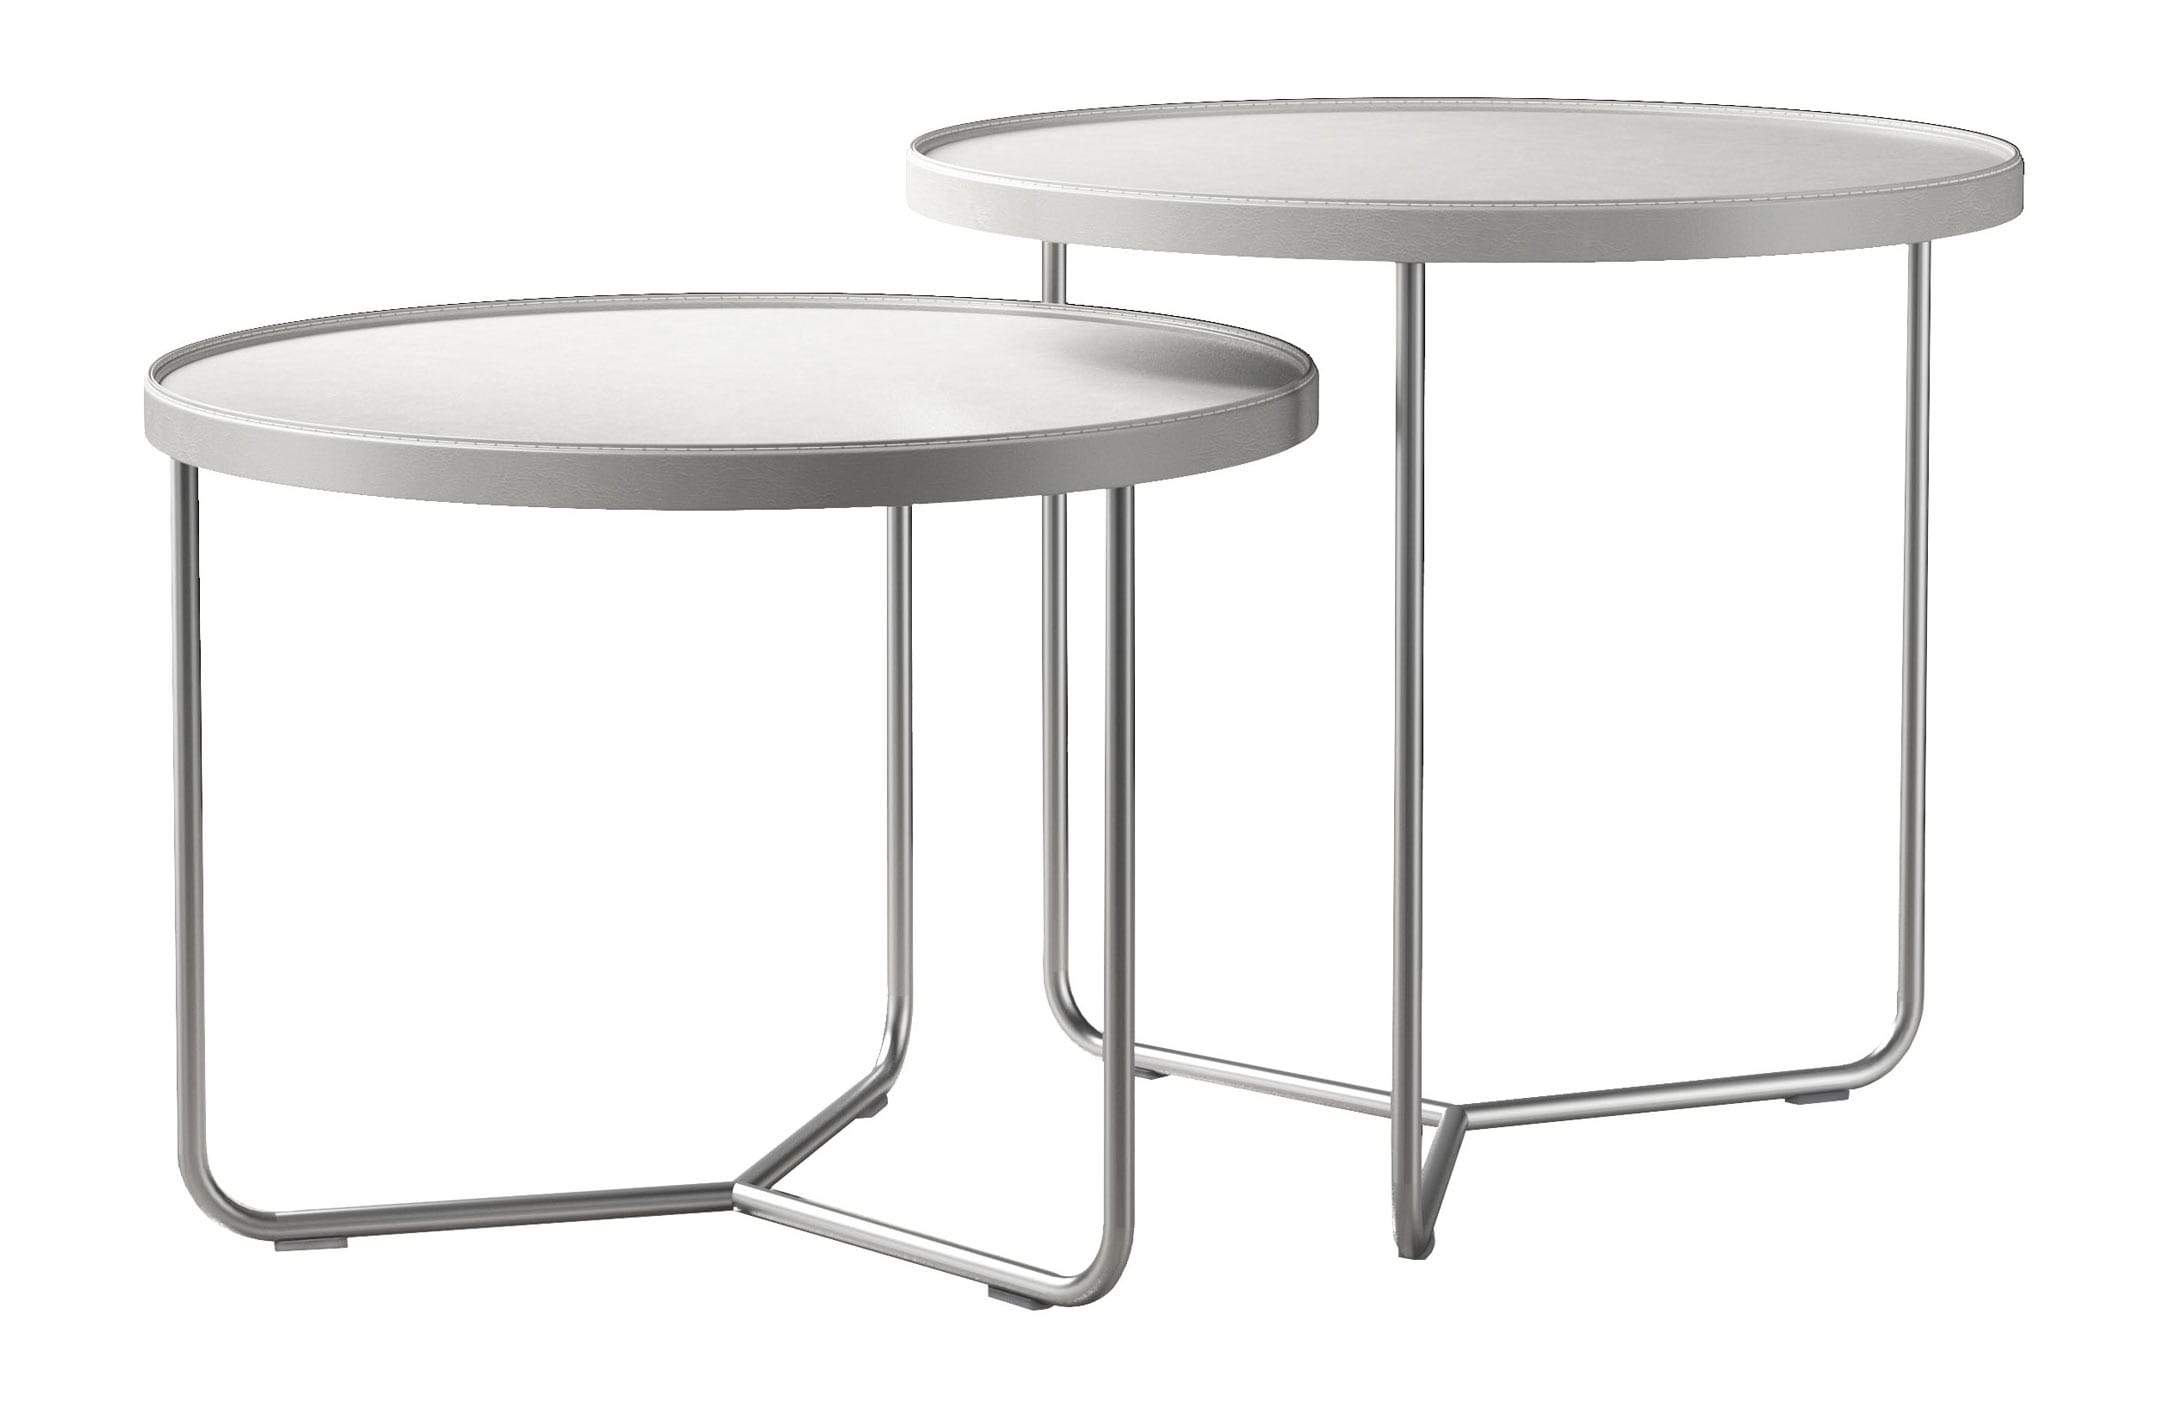 Adelphi Nesting Side Table Set Bright White by Modloft